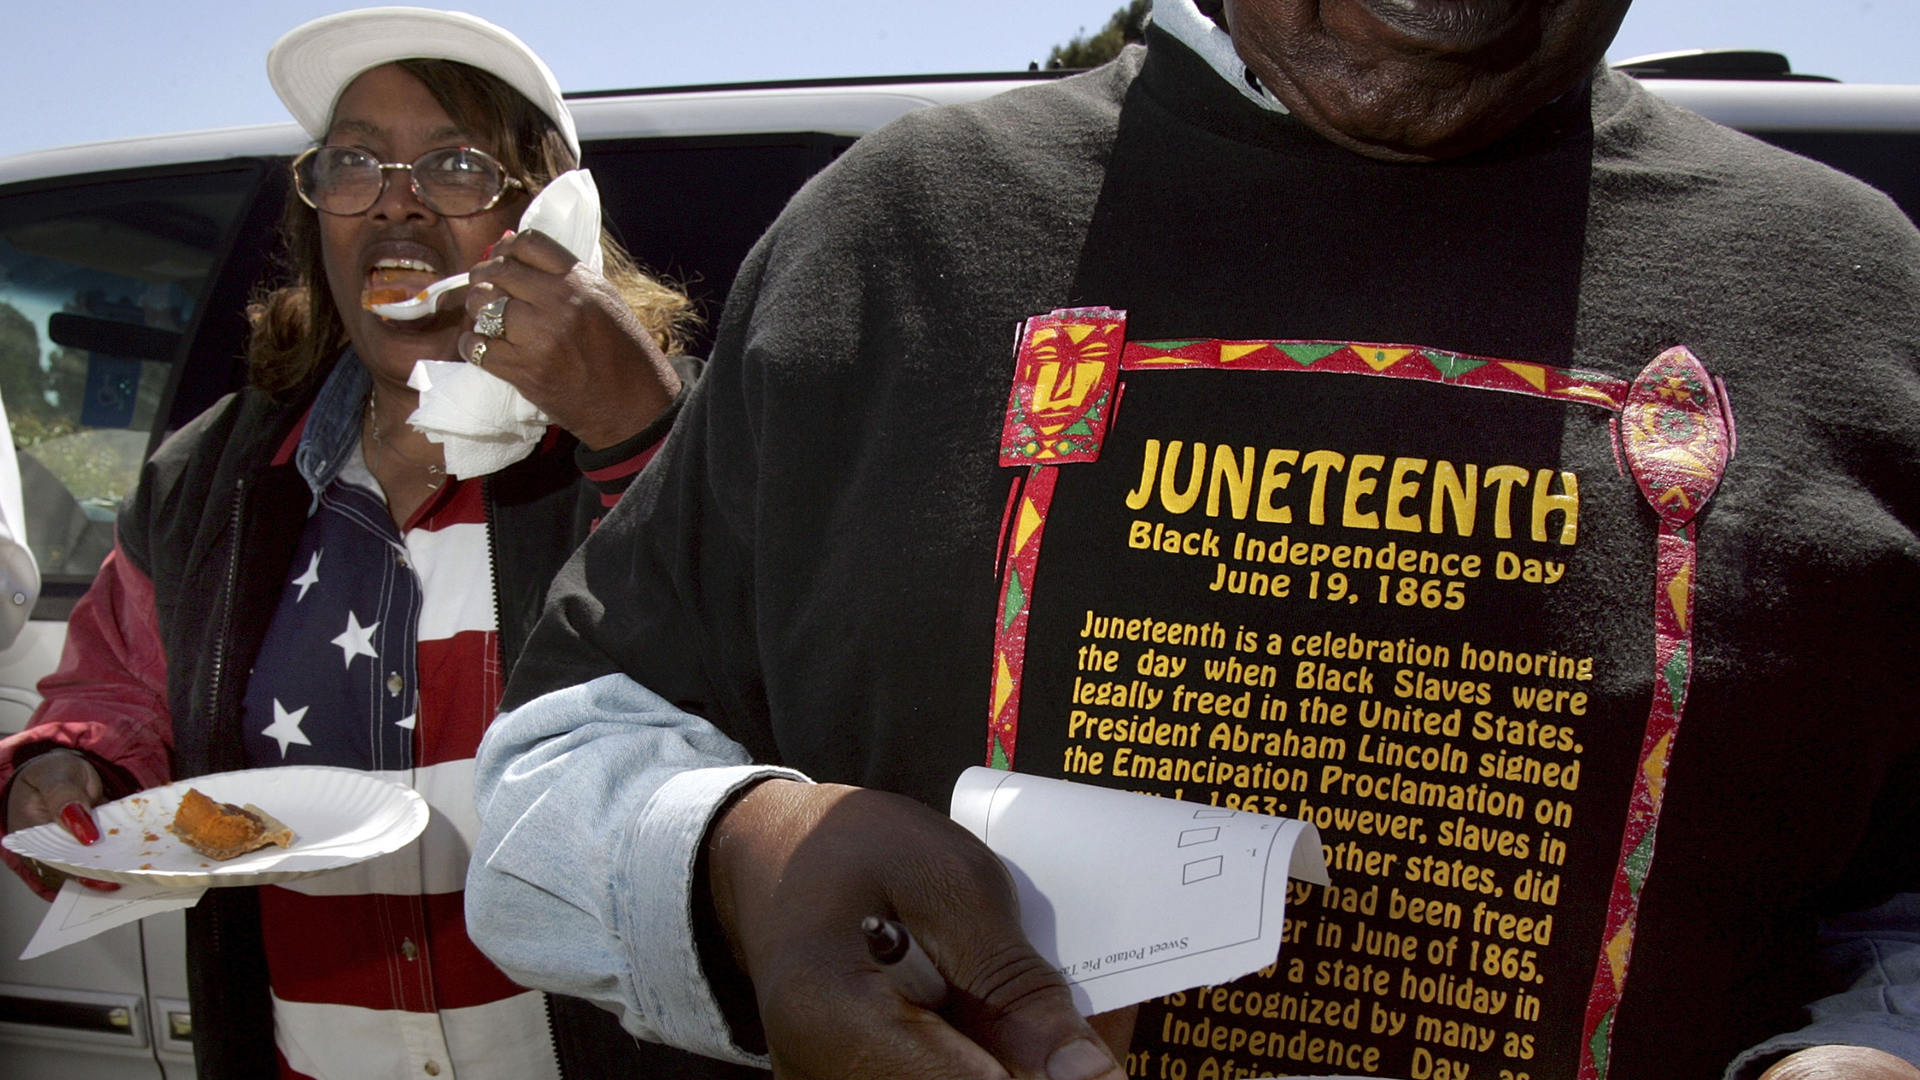 Naomi Williams (L) and D'Emanuel Grosse Sr. (R) taste the sweet potato pie entered in the cook-off contest at the Juneteenth, Black Independence Day celebrations at Nichol Park on June 19, 2004, in Richmond, Calif. (Credit: David Paul Morris/Getty Images)